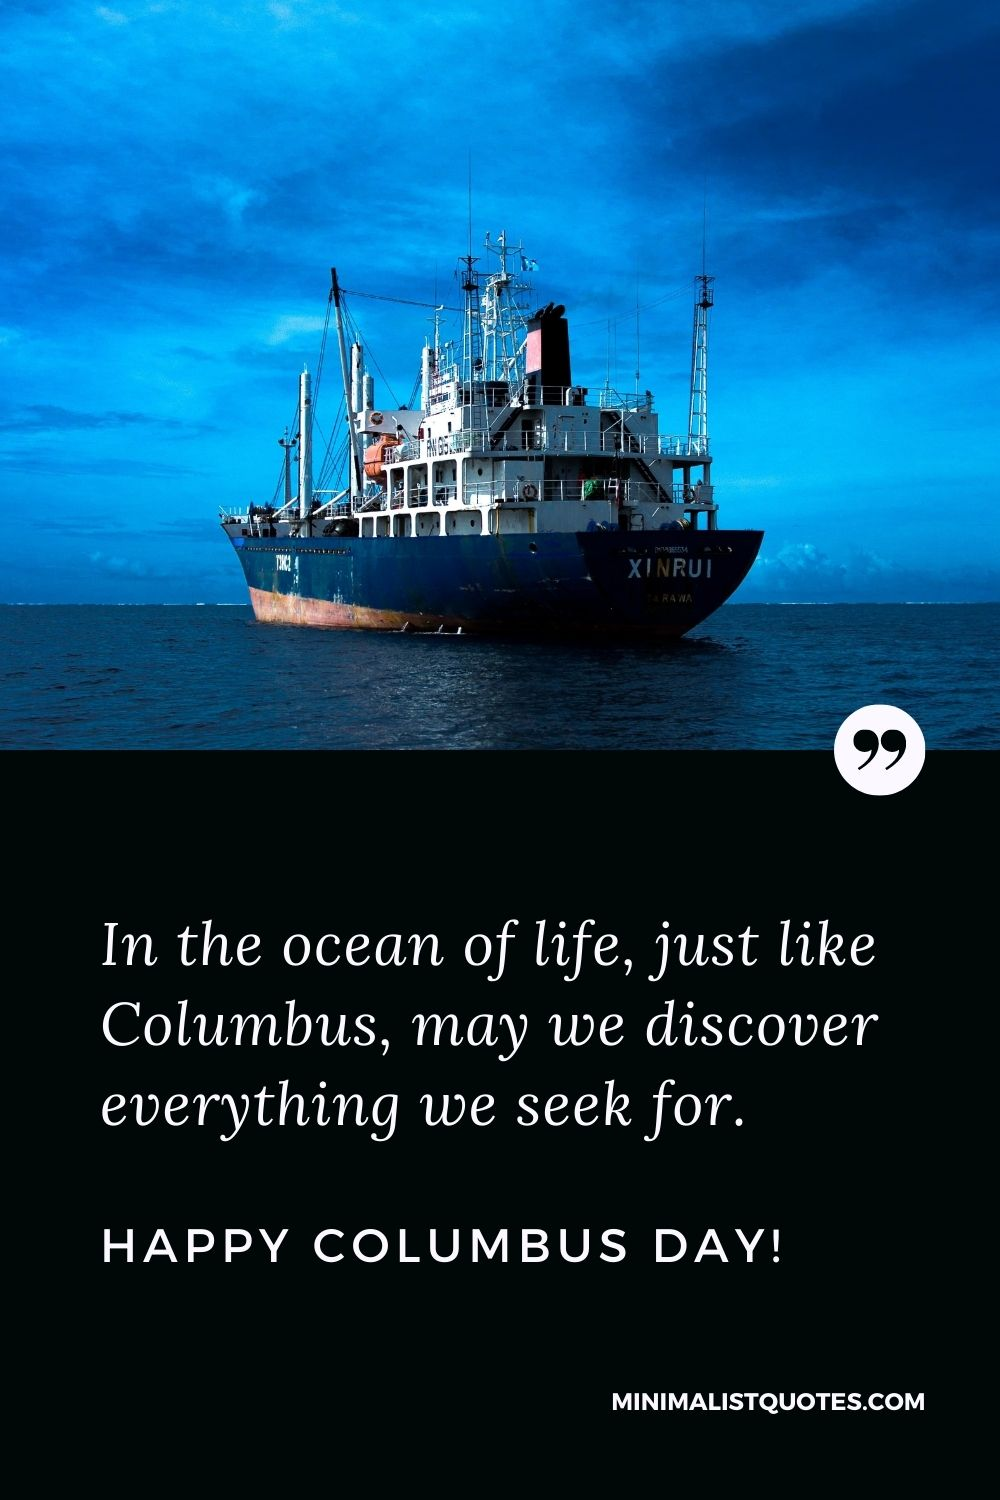 Happy Columbus Day wishes, quotes & messages with images: In the ocean of life, just like Columbus, may we discover everything we seek for.